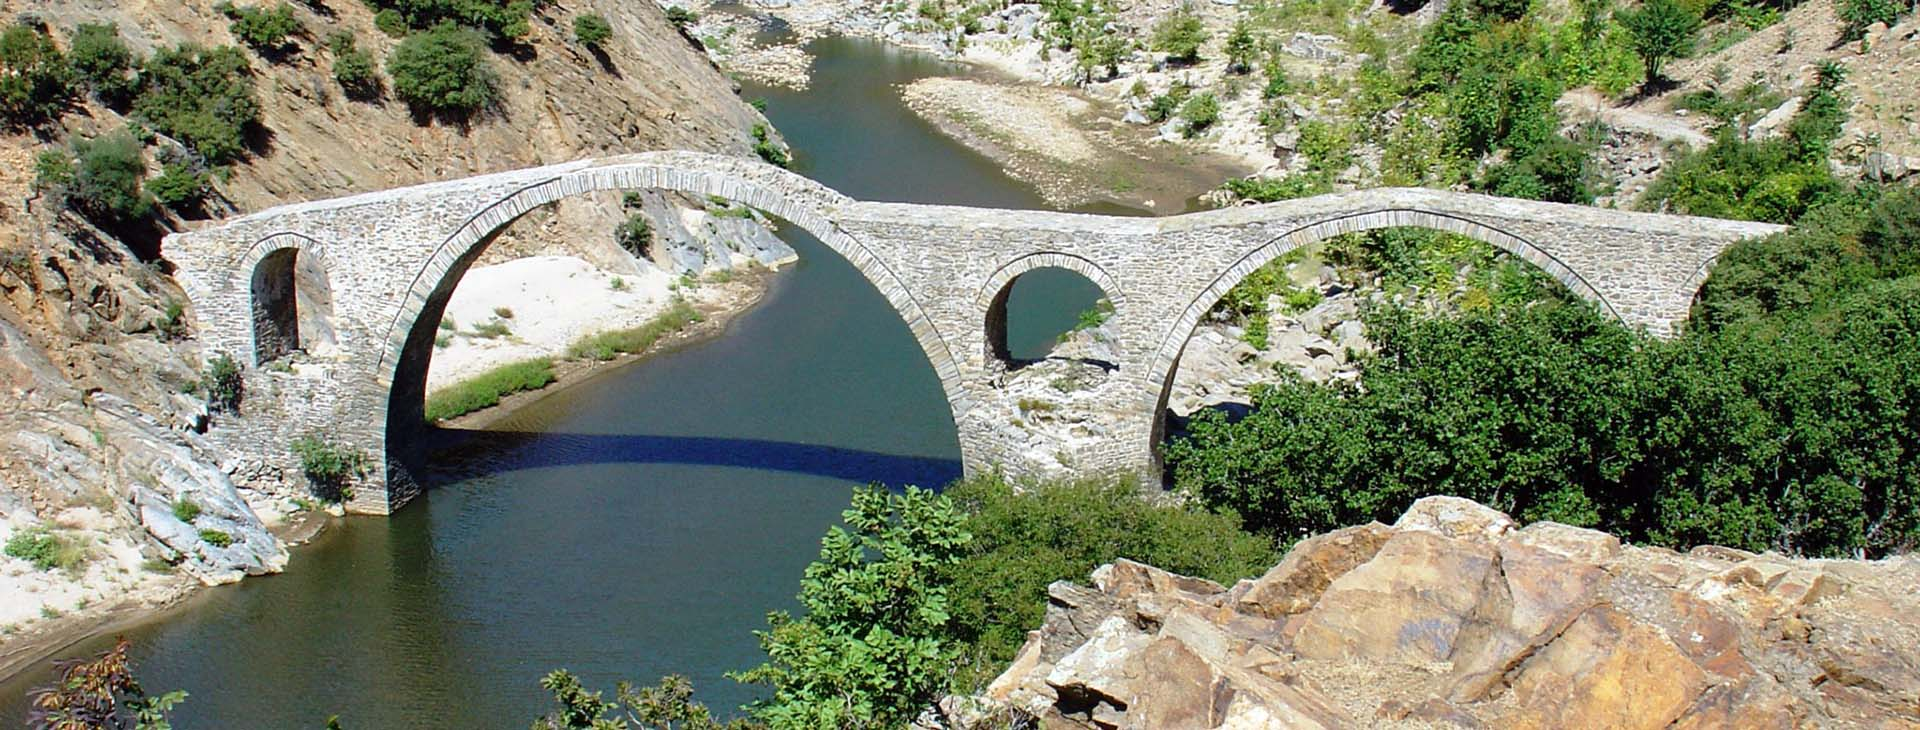 Vyzantine bridge at Kompsatos river, Rodopi